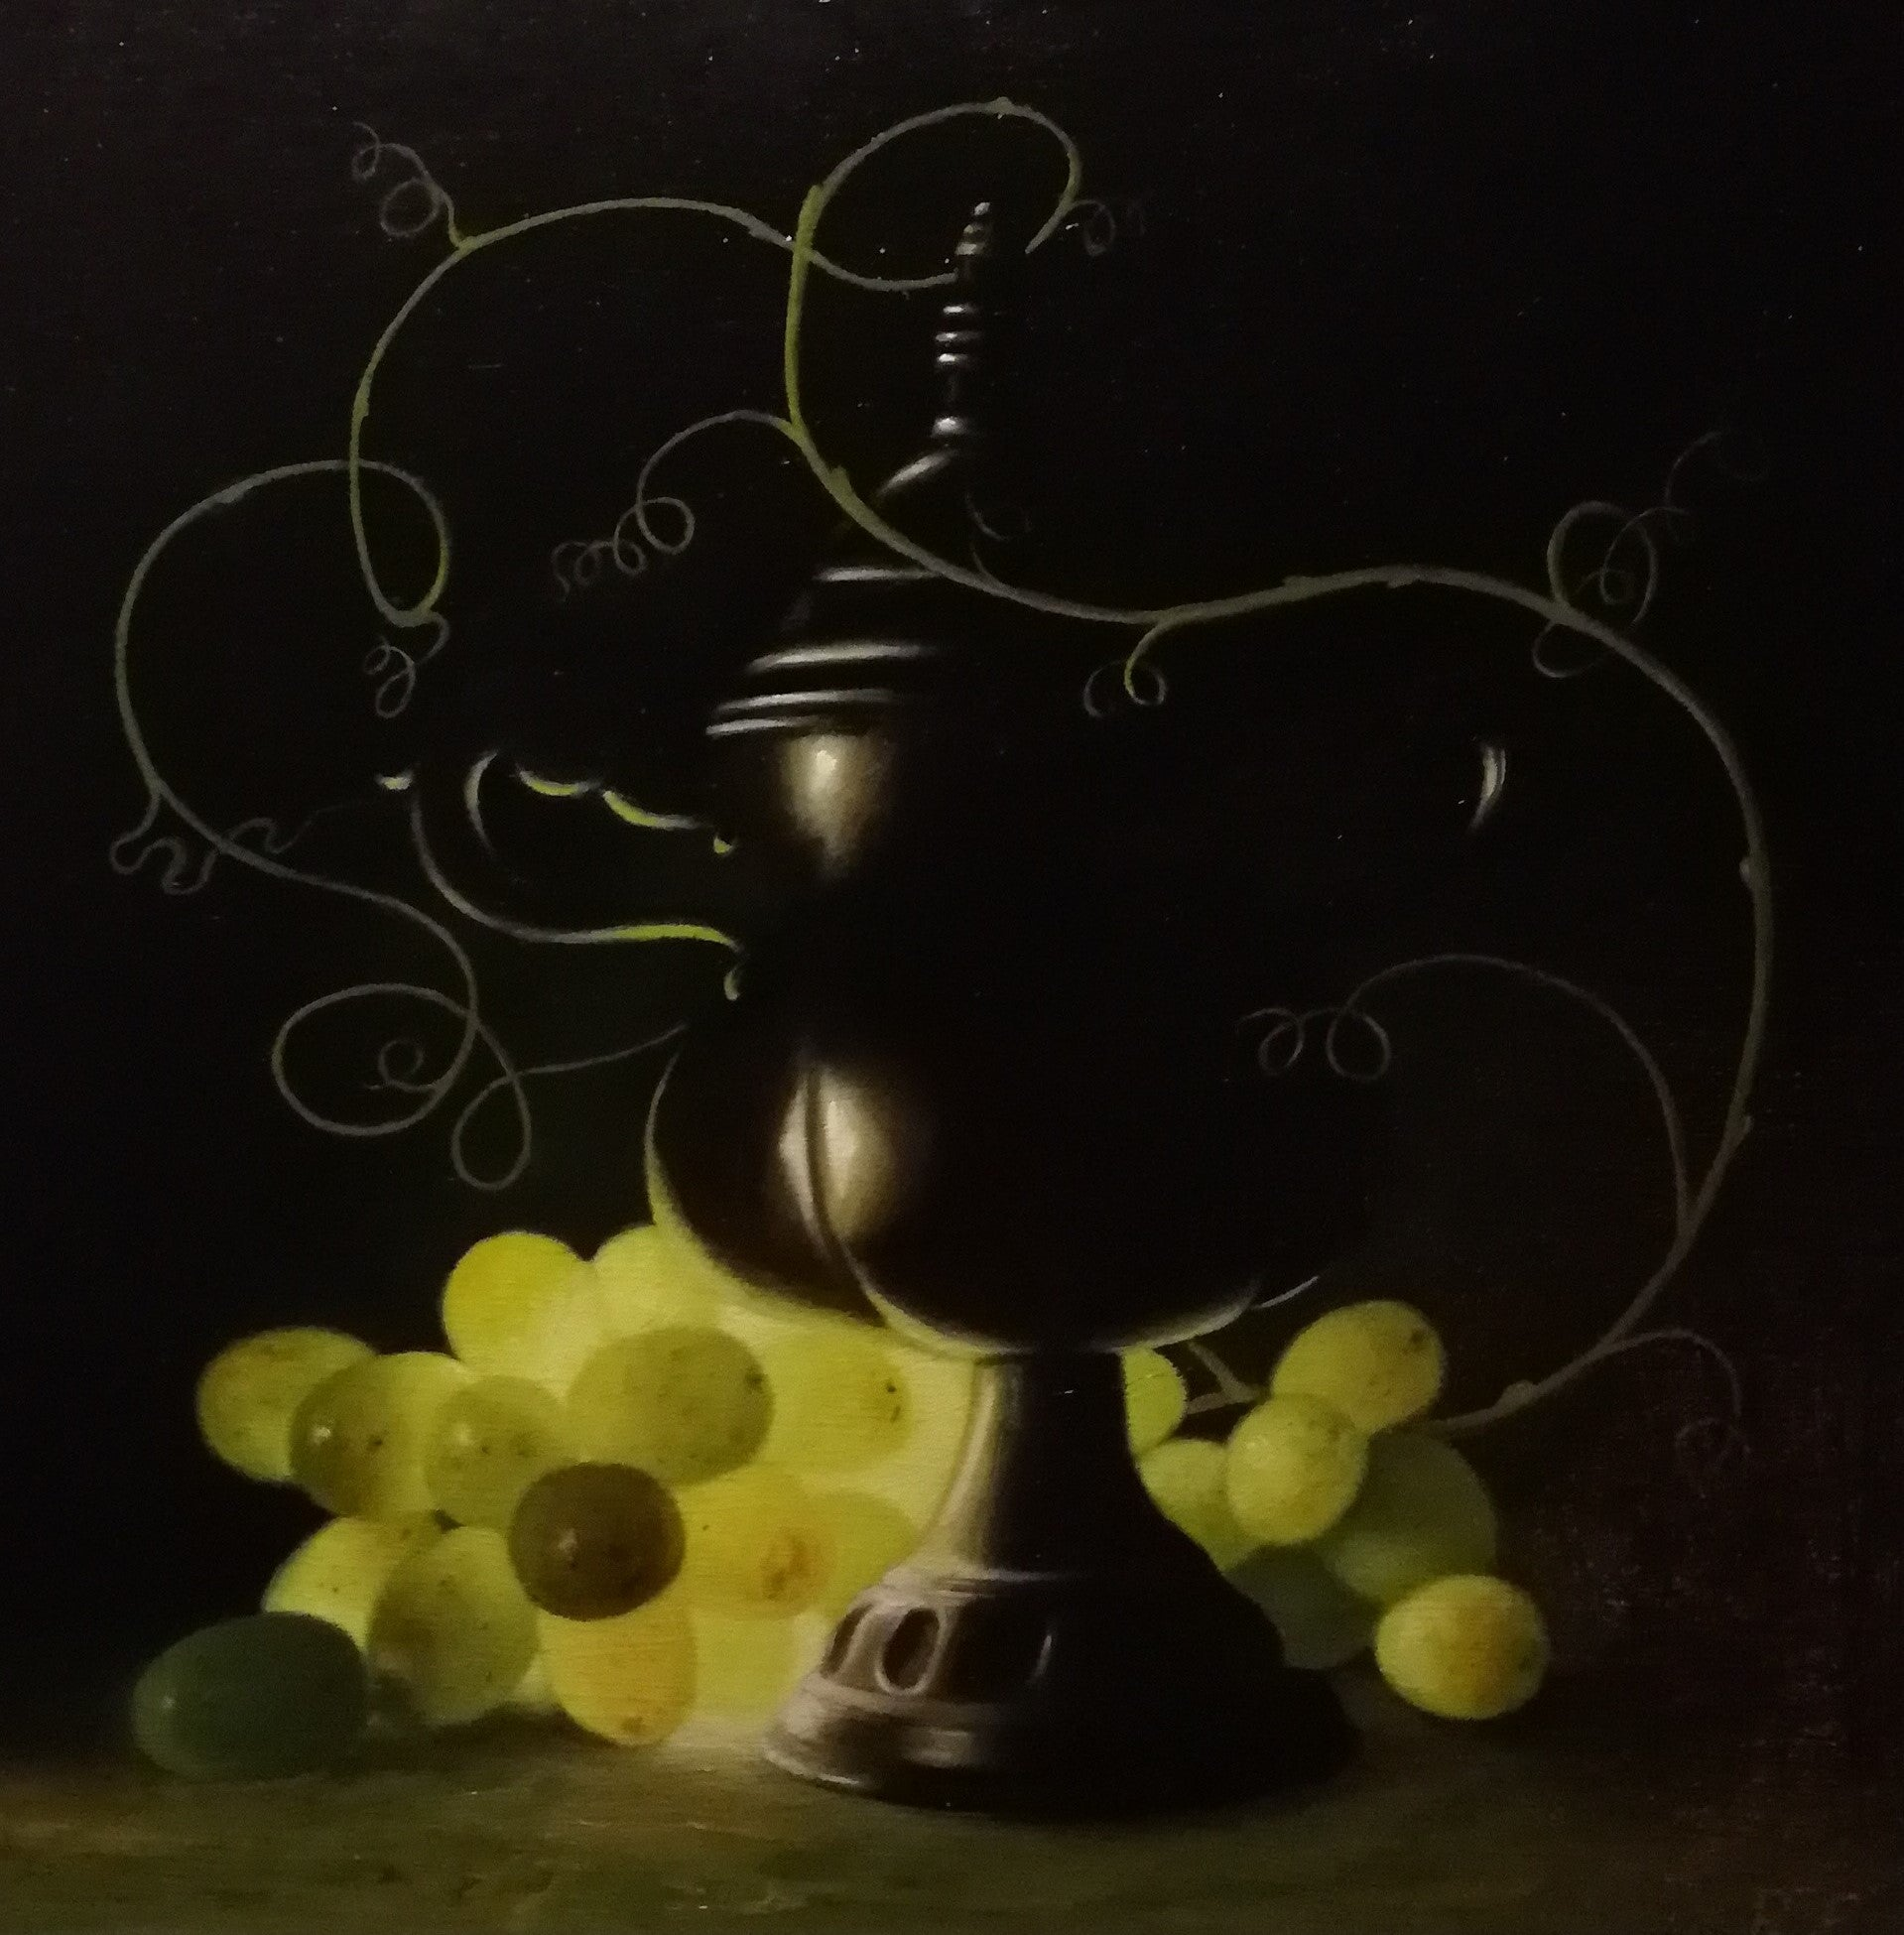 Yellow grapes and dark vase